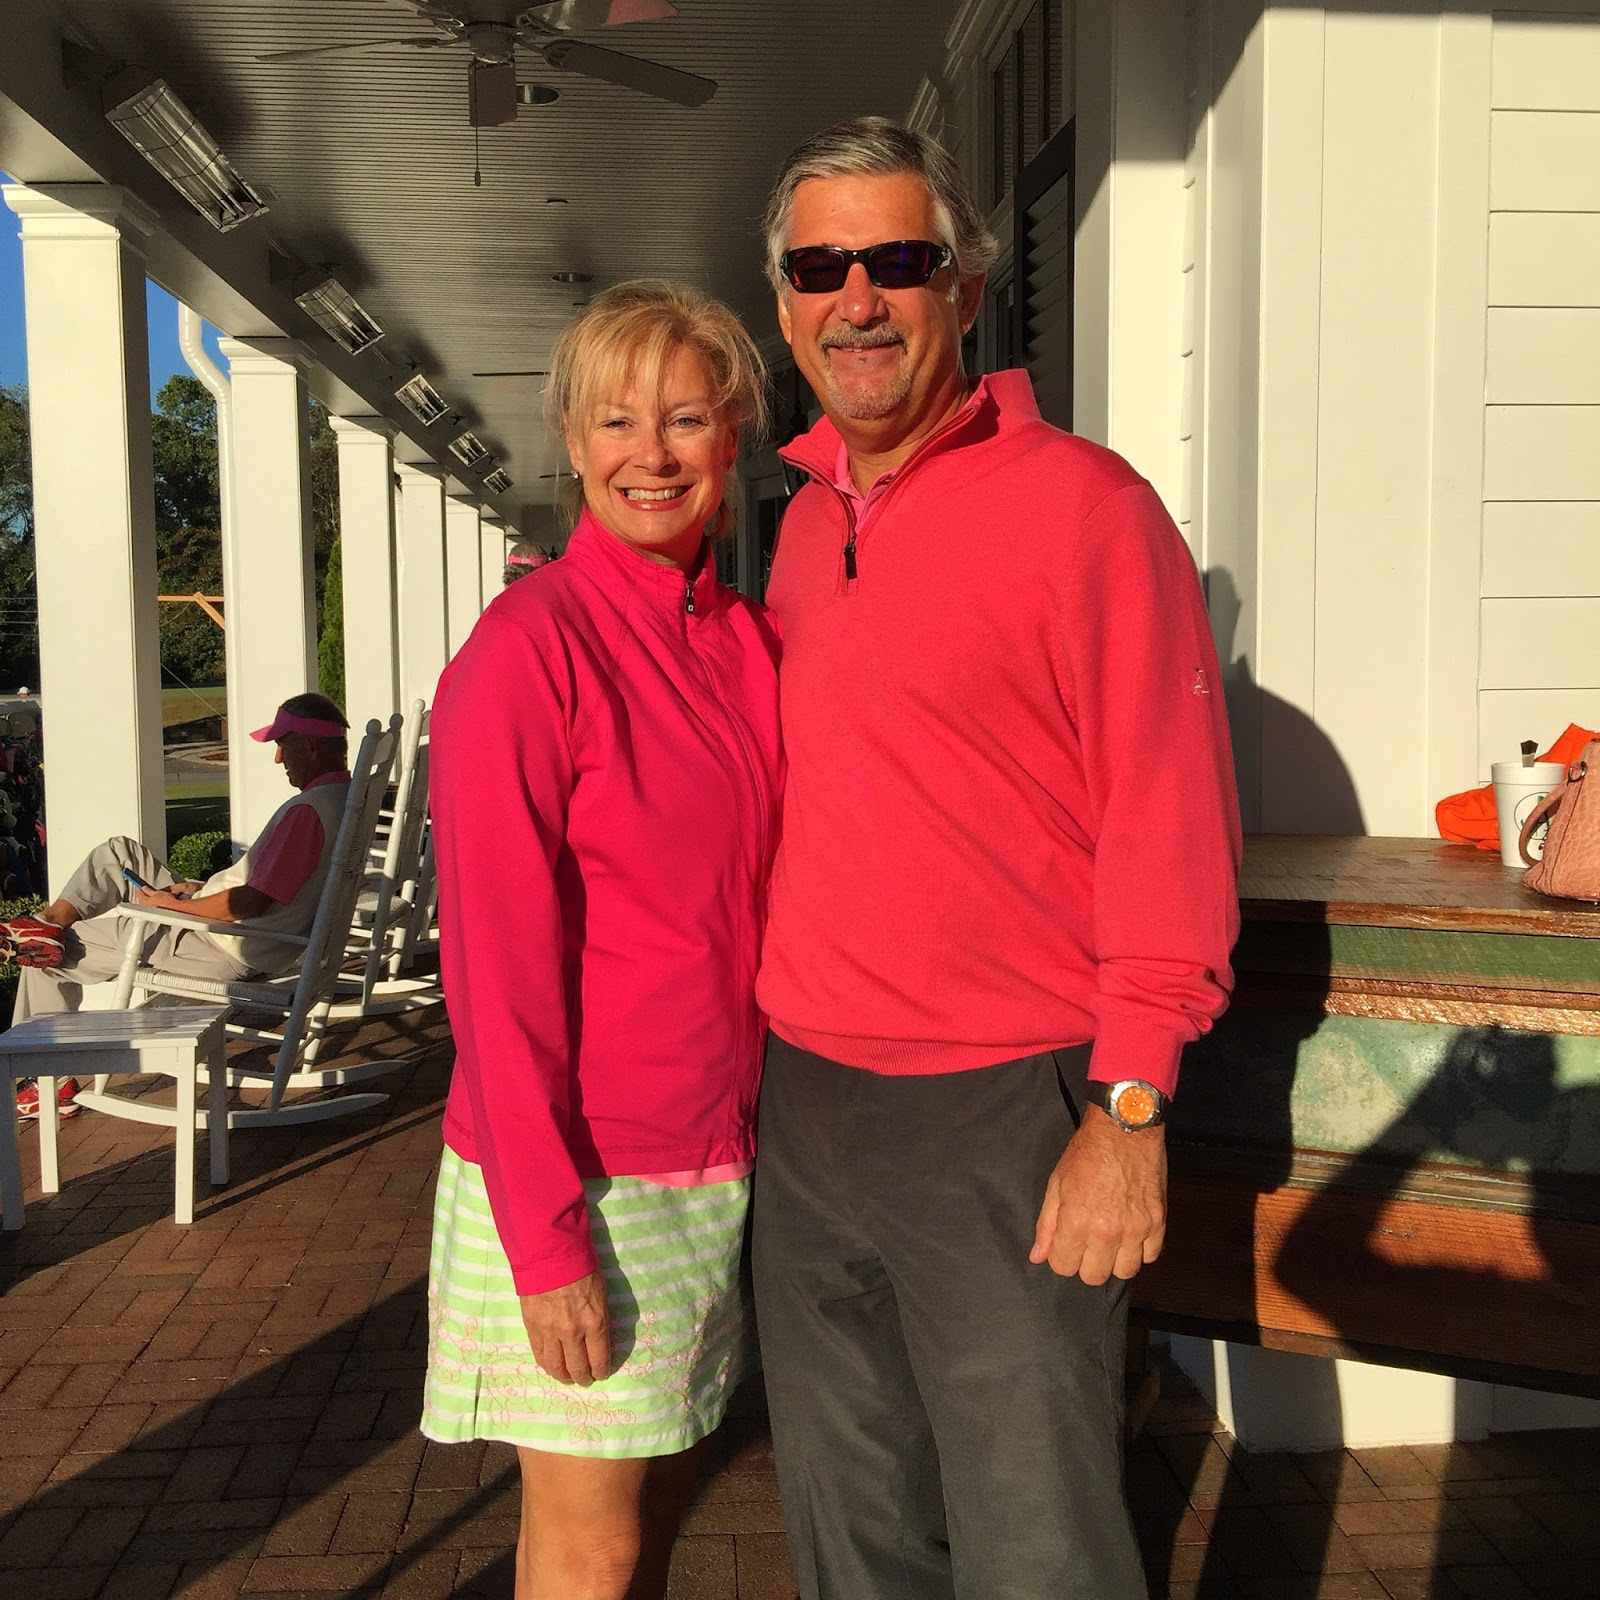 Lifestyle over 50 : Pretty in Pink- October is Breast Cancer Awareness Month